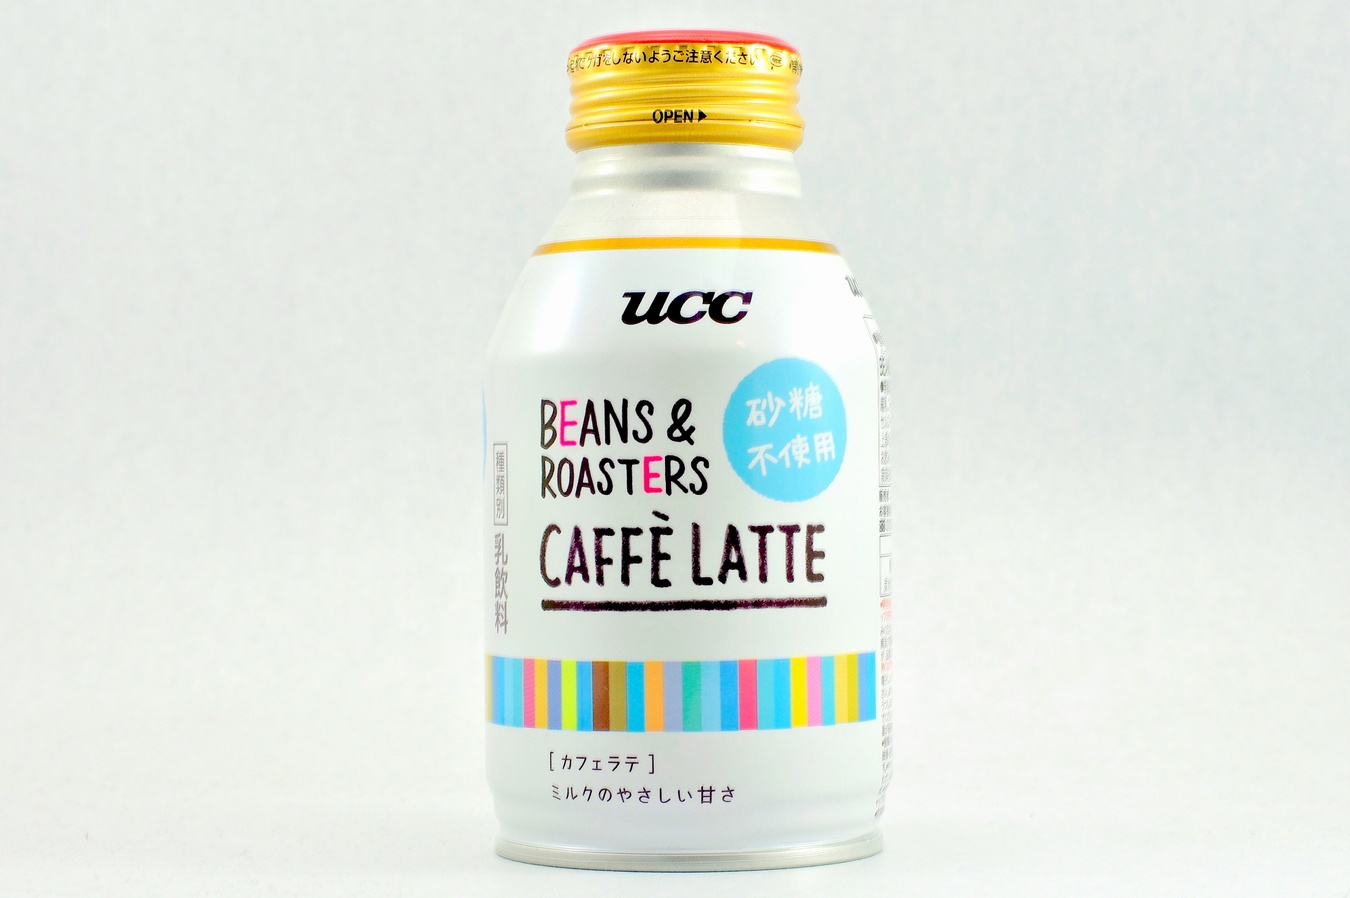 UCC BEANS & ROASTERS CAFFE LATTE 砂糖不使用